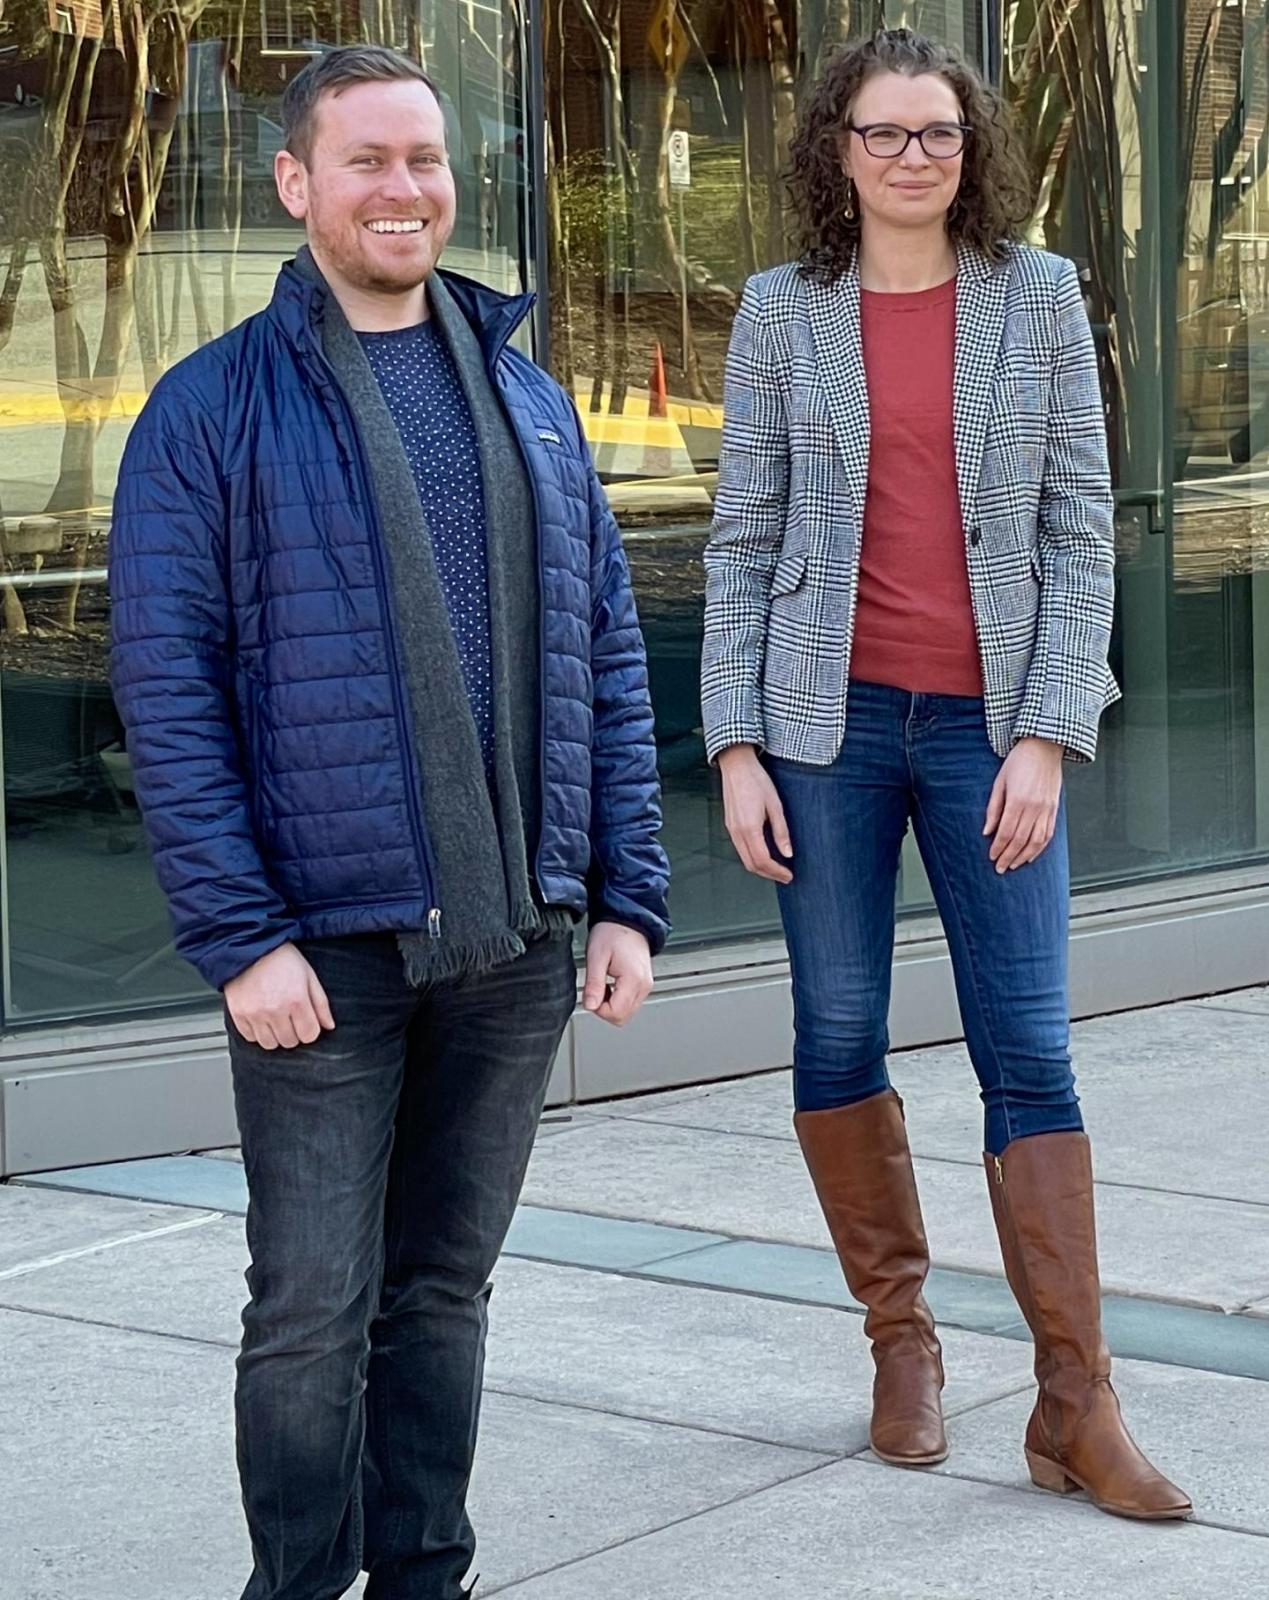 Two scientists standing on a sidewalk